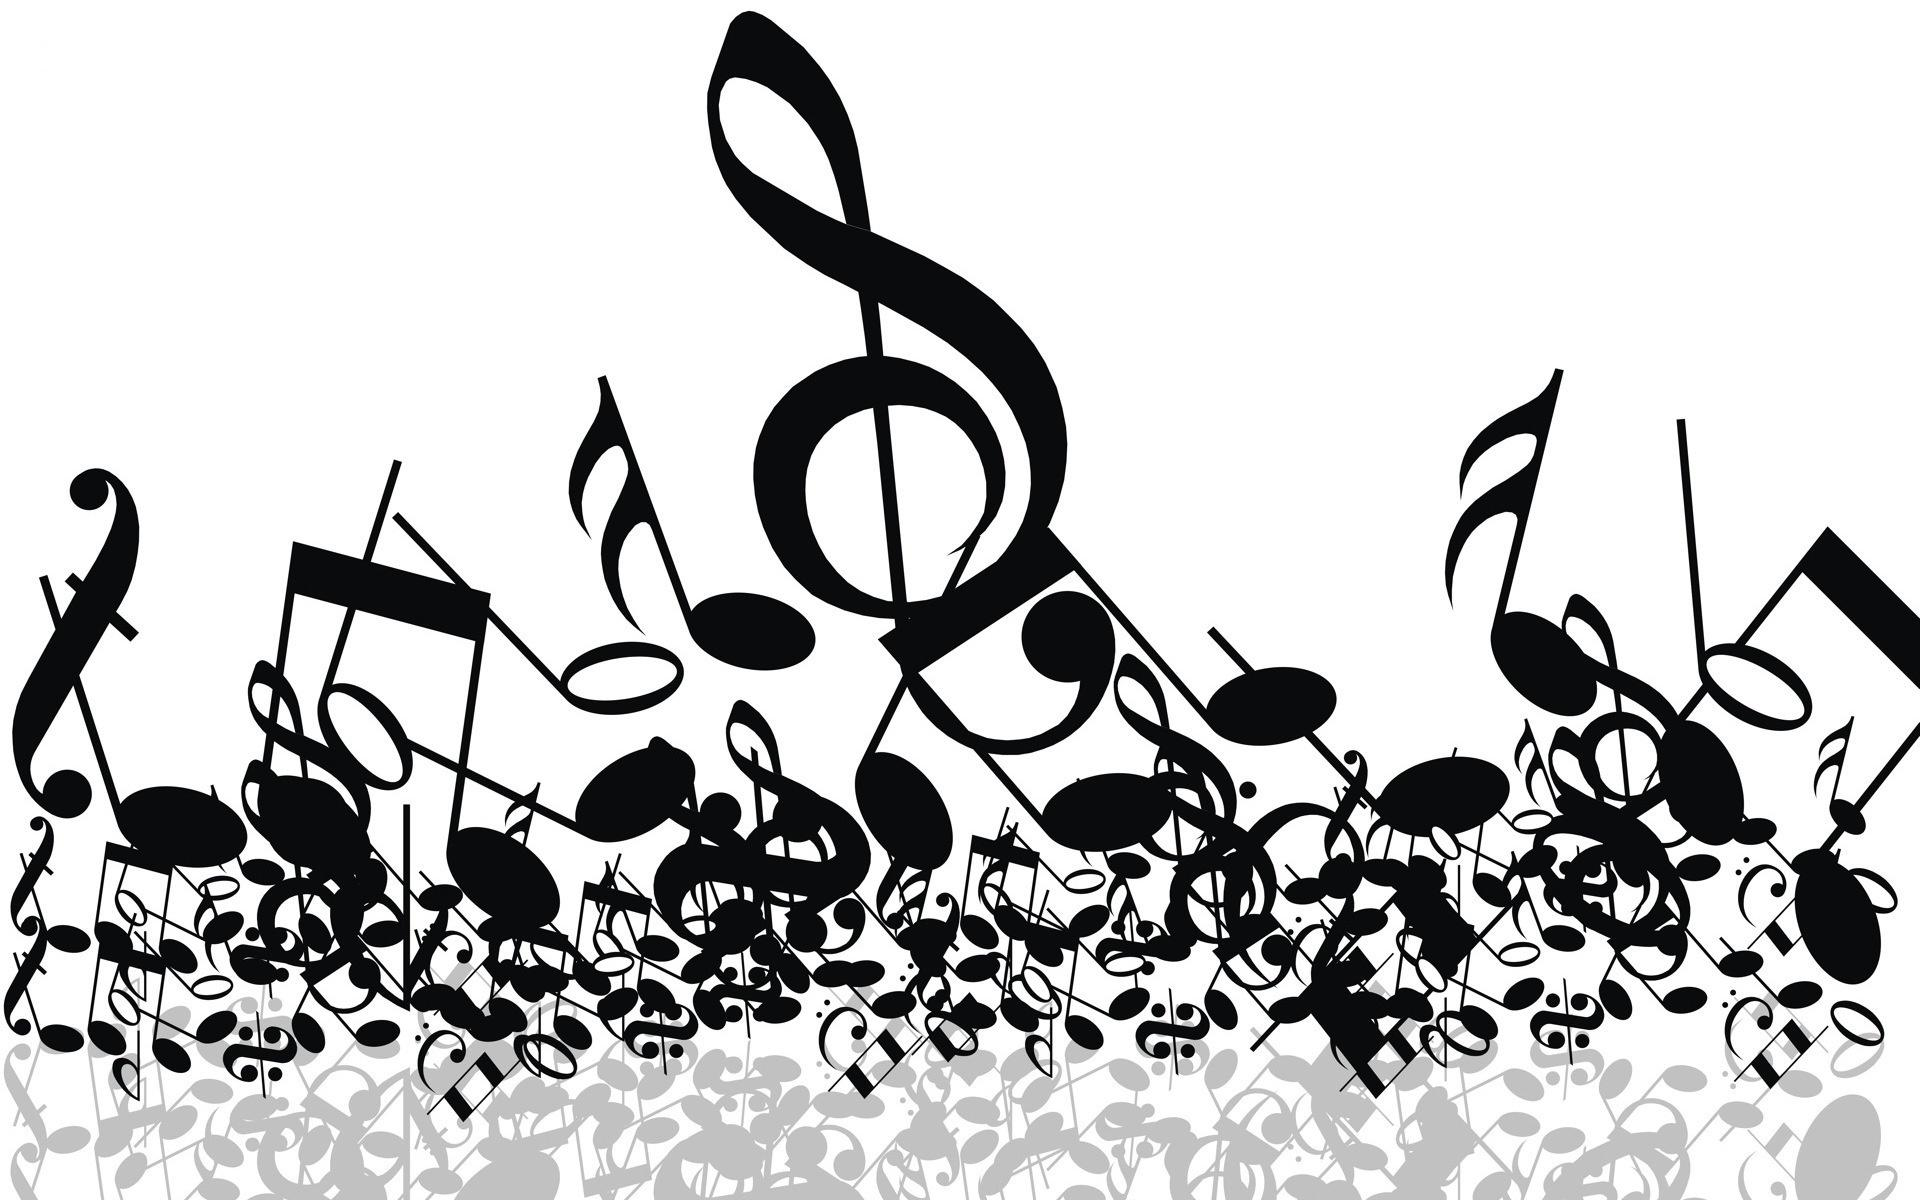 Free spring concert clipart band image 2.